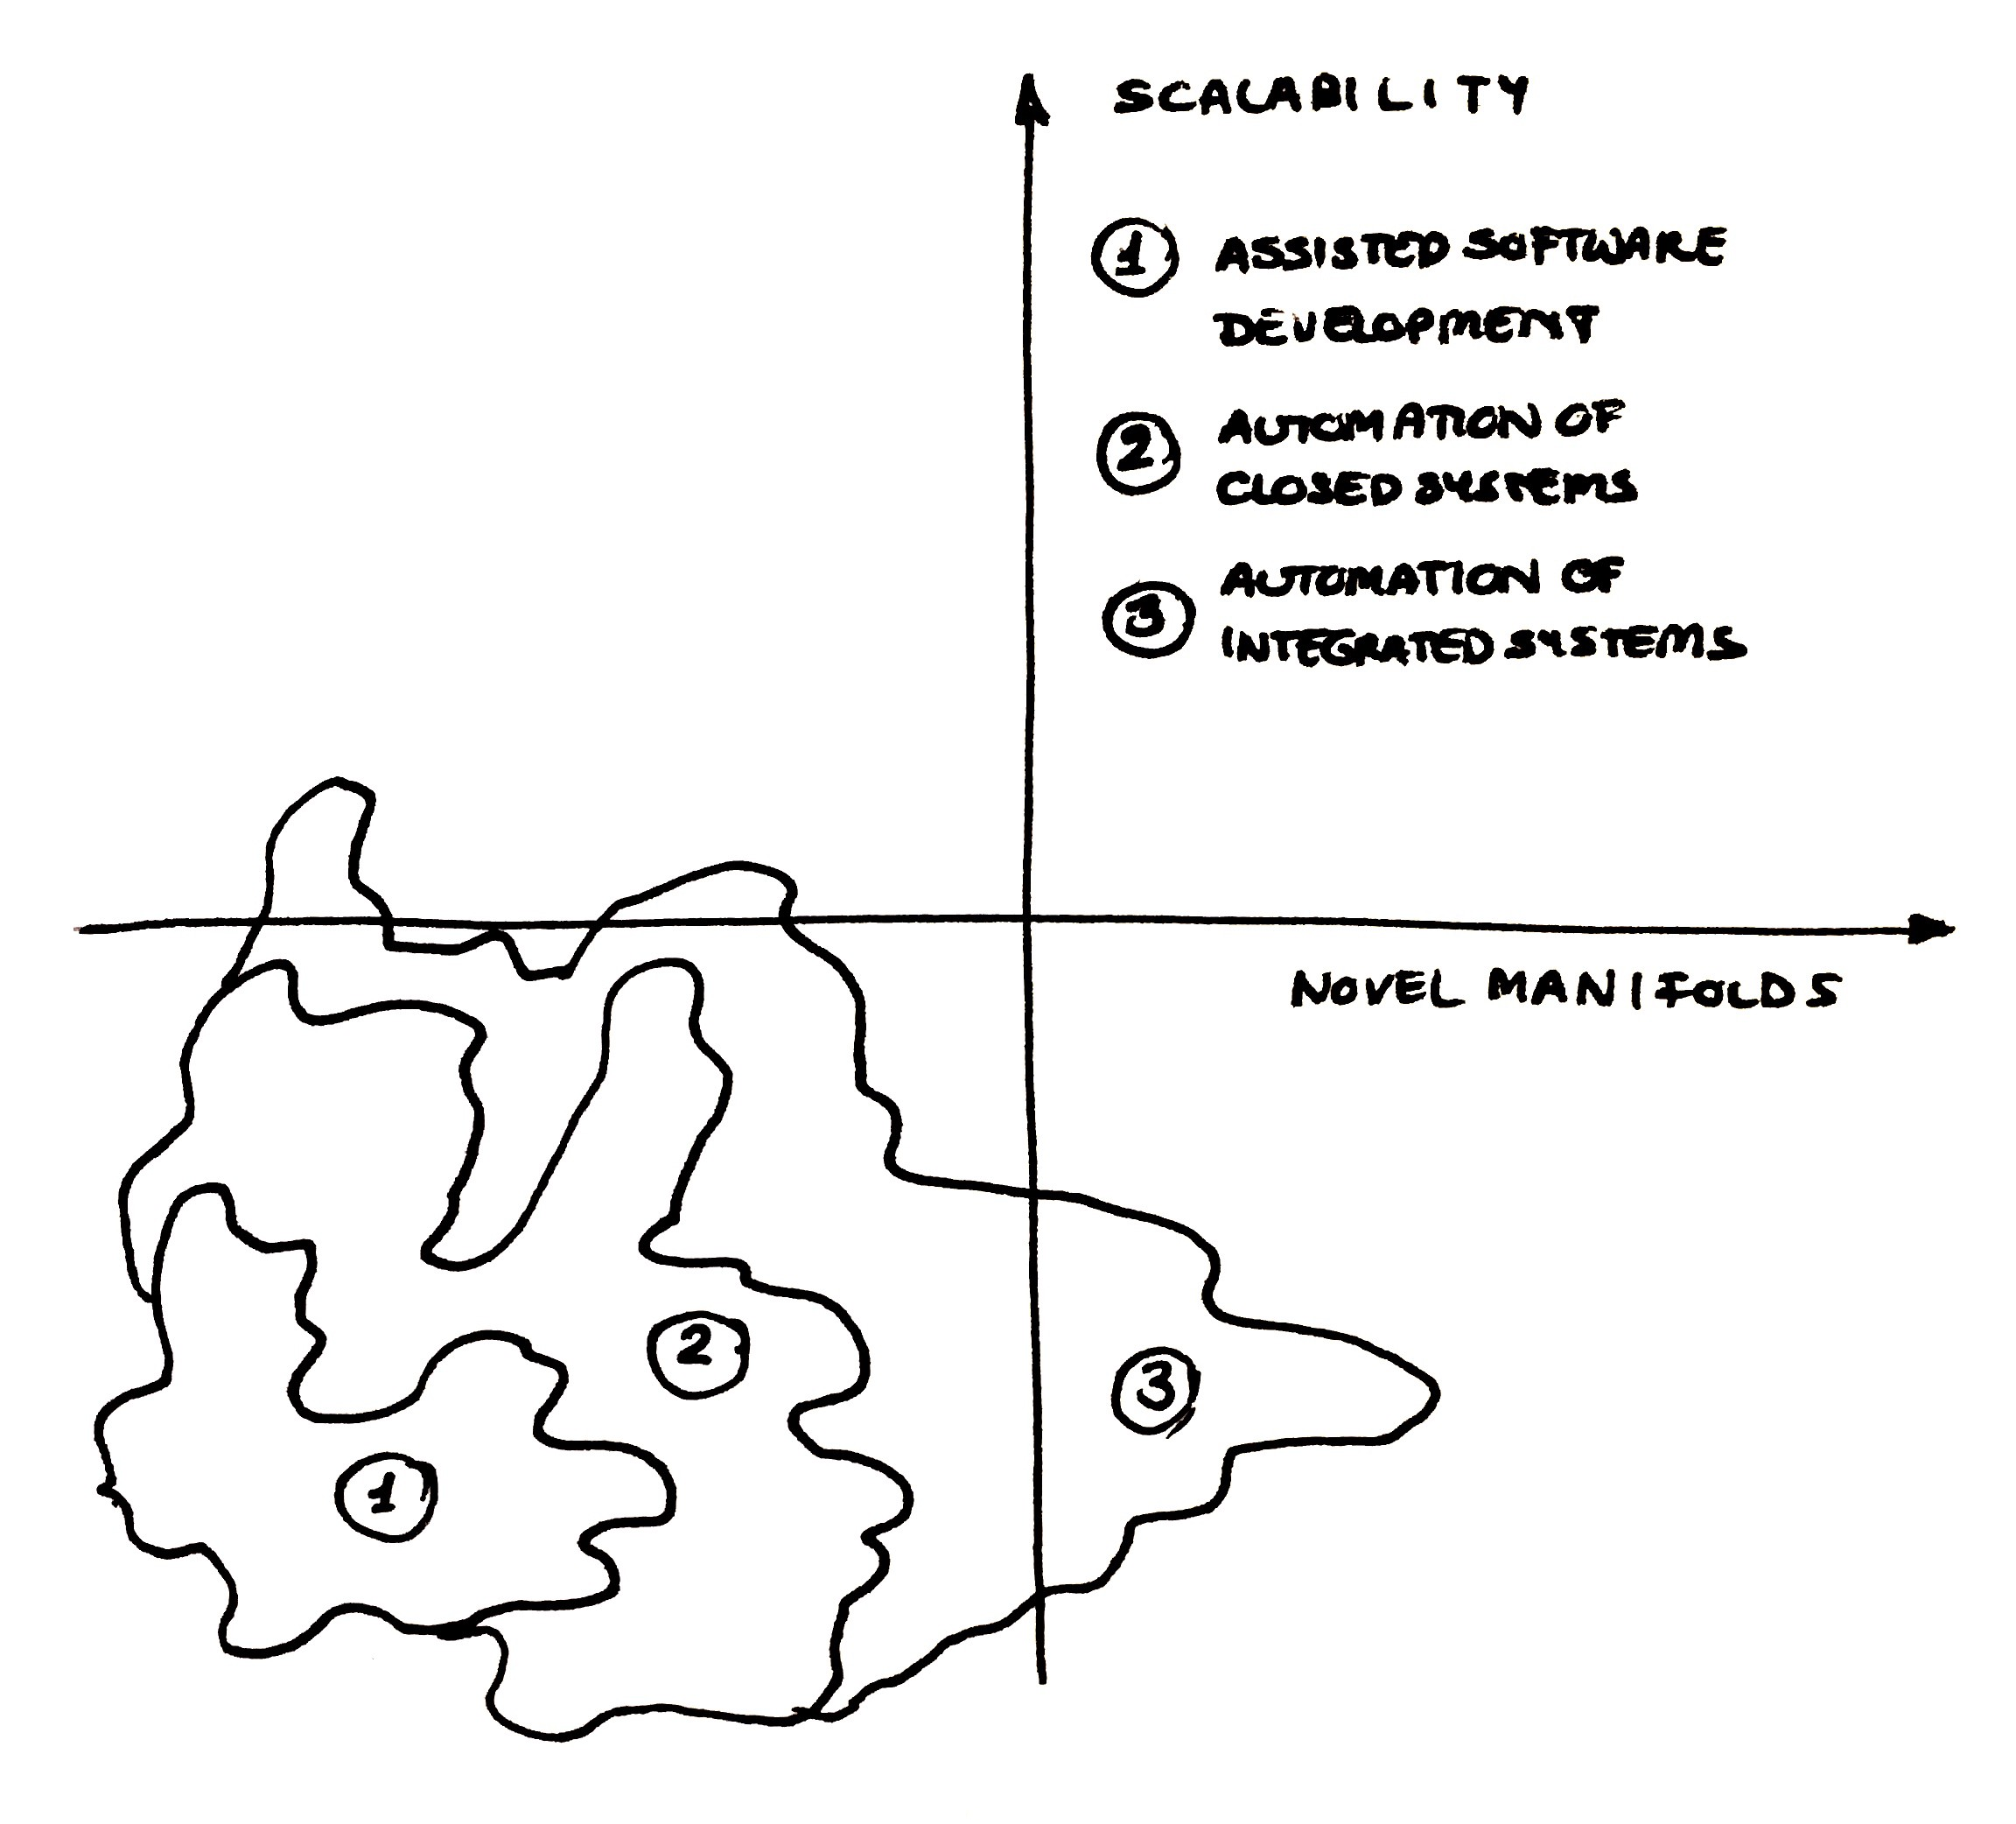 Diagram of novel manifolds versus scalability. The areas of automation are in the lower left corner.